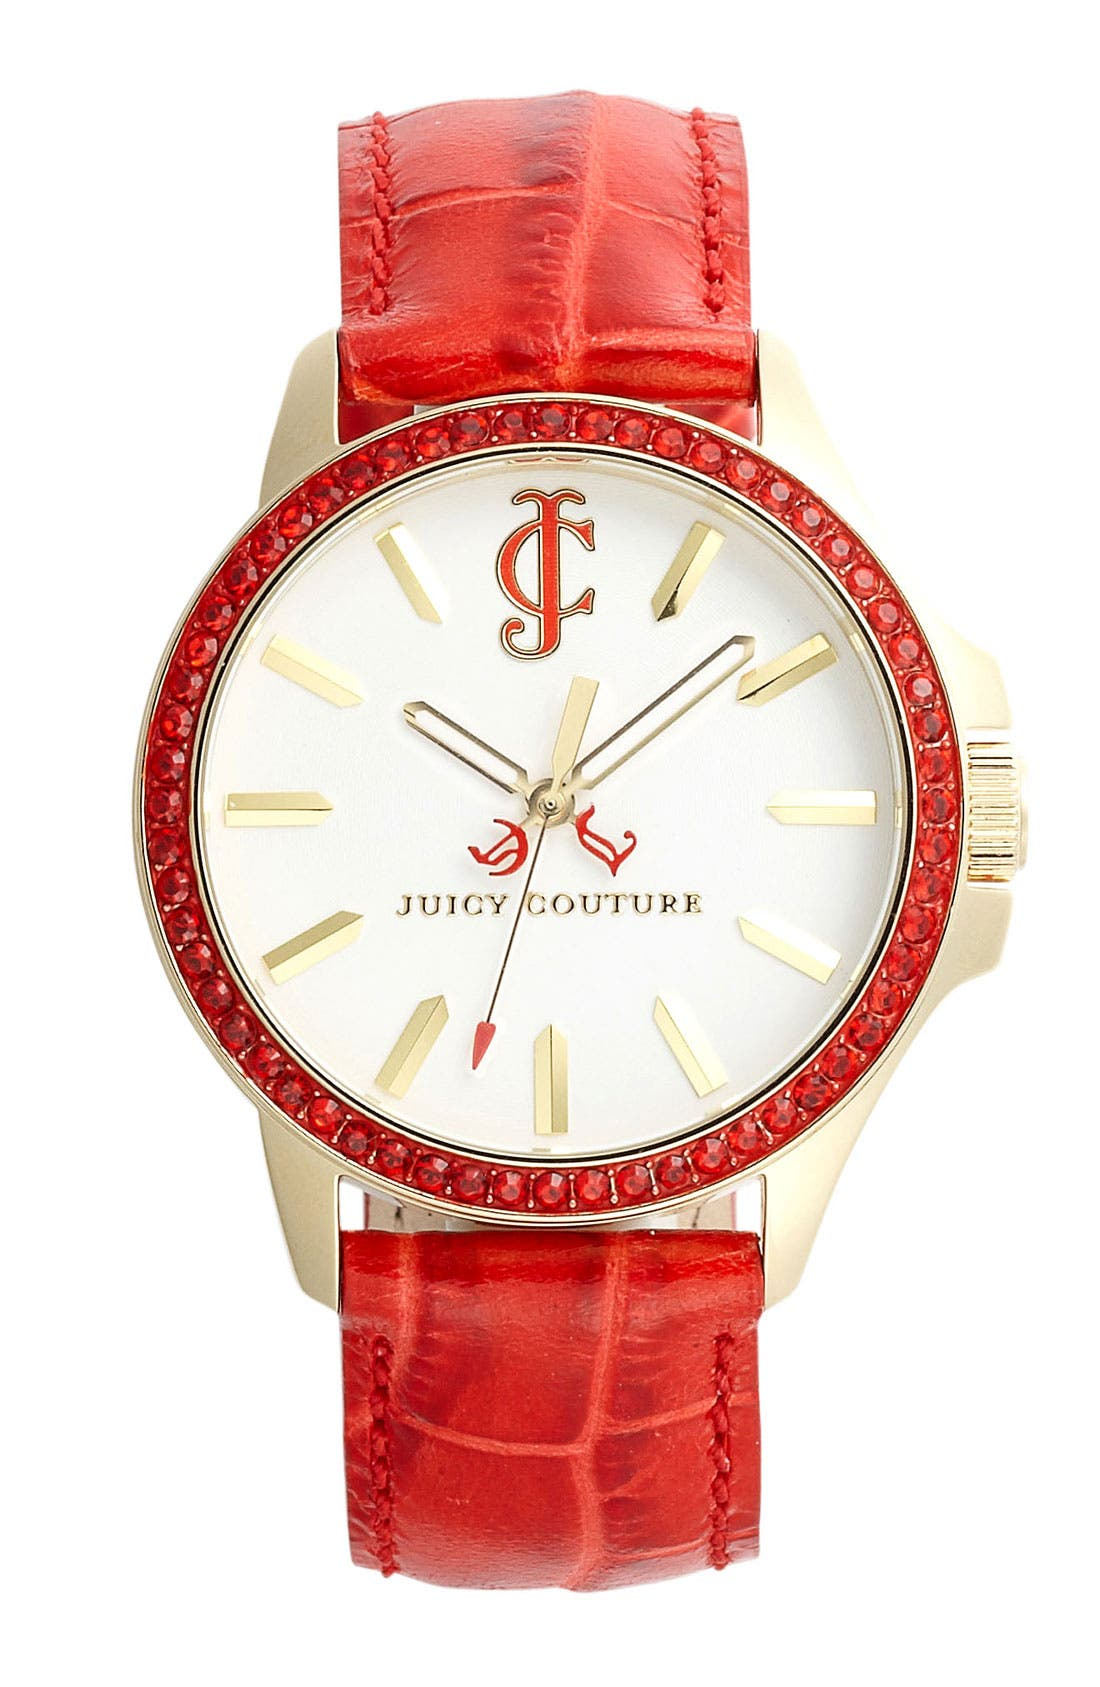 Main Image - Juicy Couture 'Jet Setter' Round Leather Strap Watch, 38mm